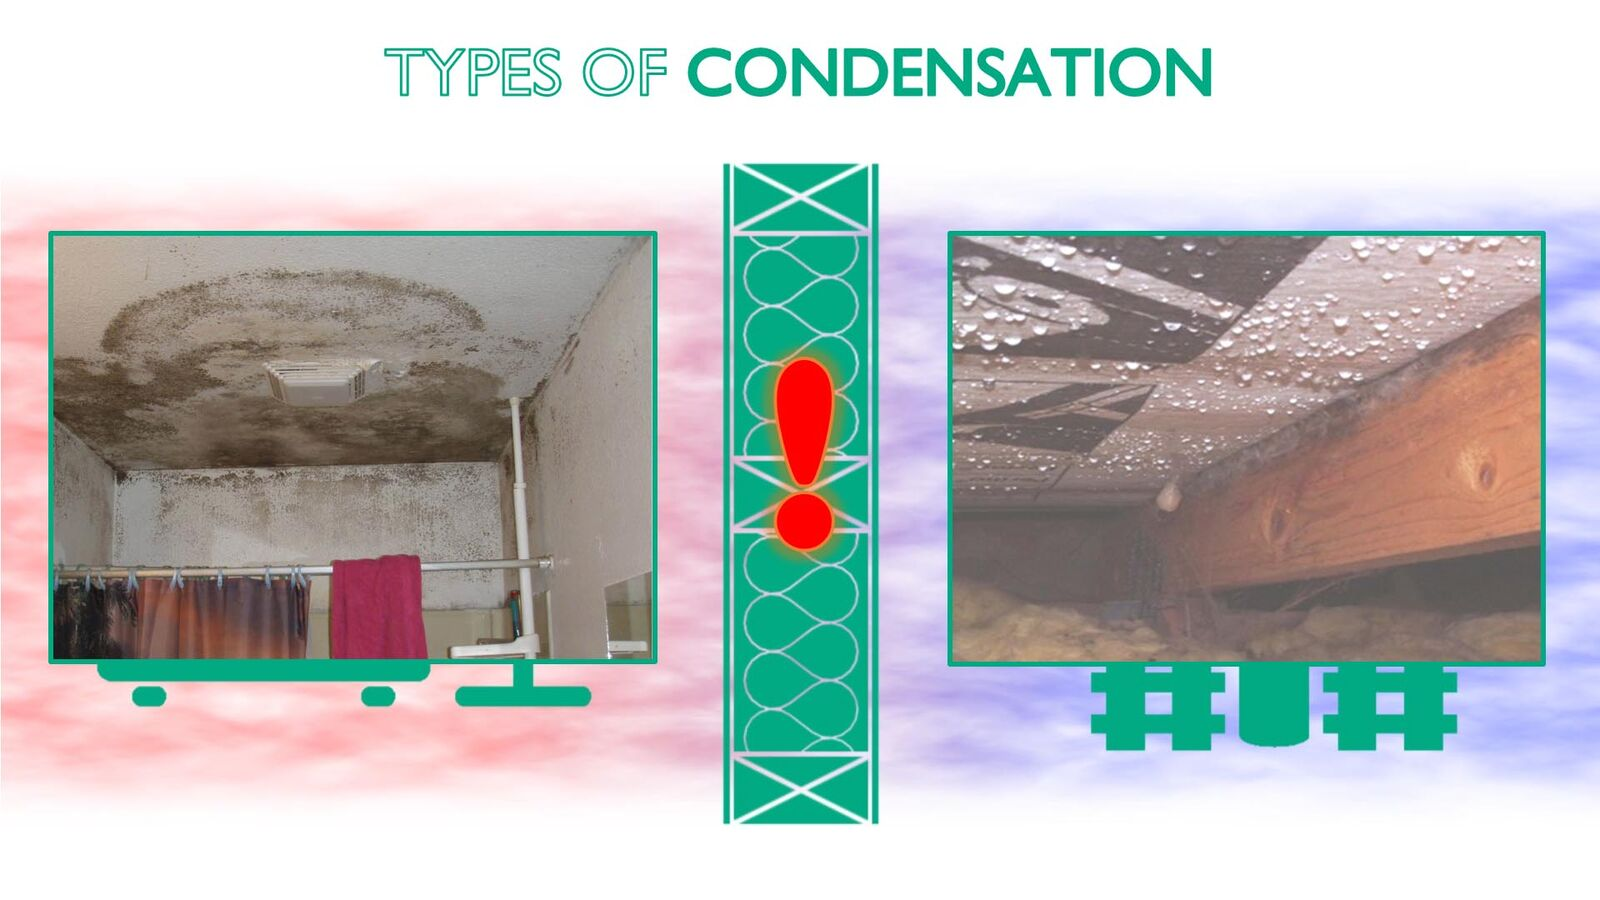 Types of condensation.